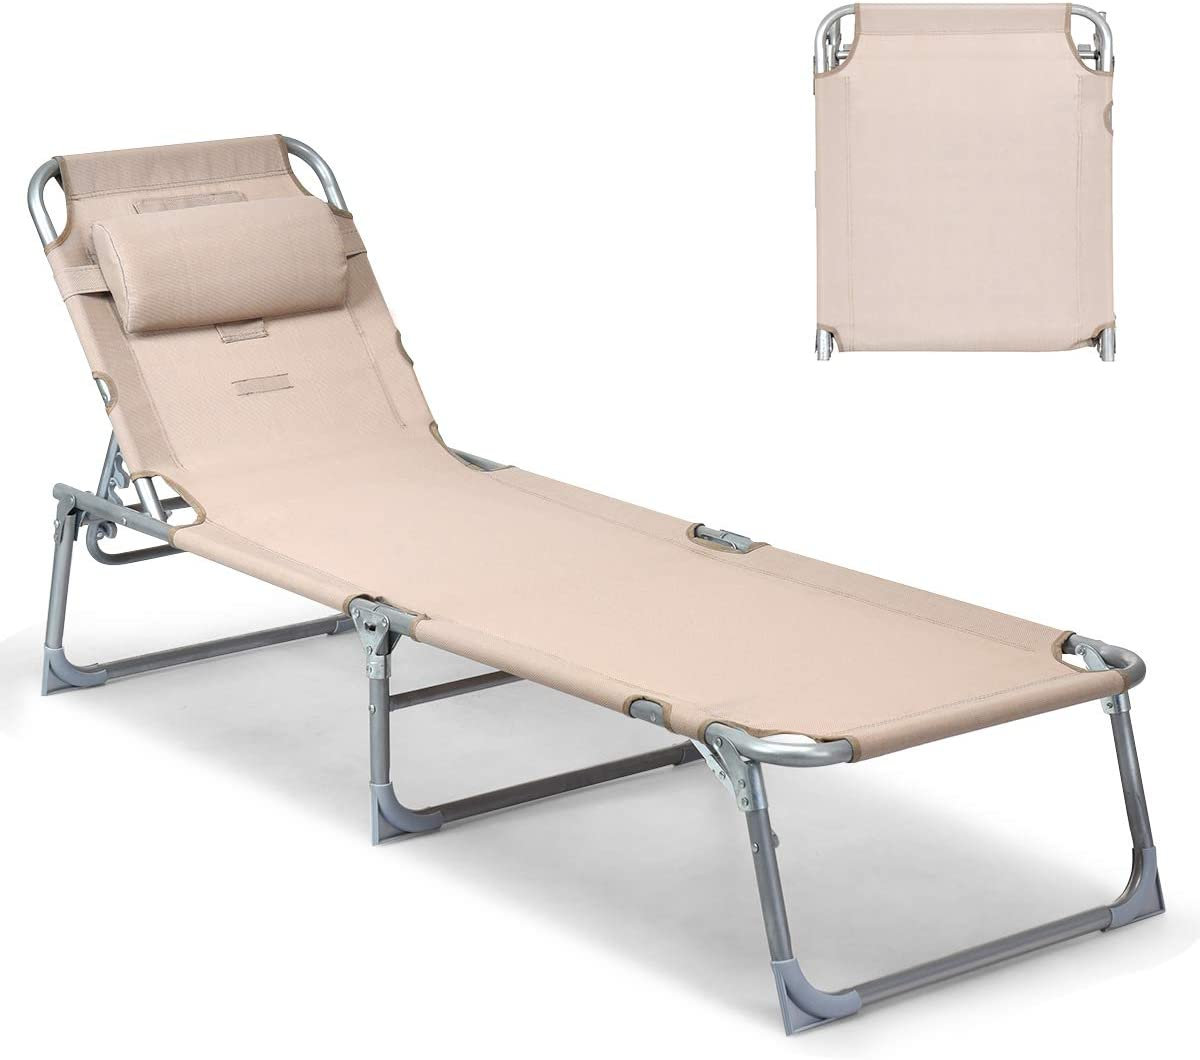 Goplus Adjustable Chaise Lounge Chair Recliner w Sunbathing Tanning Face Down Hole for Beach Outdoor Pool Patio Deck Apricot